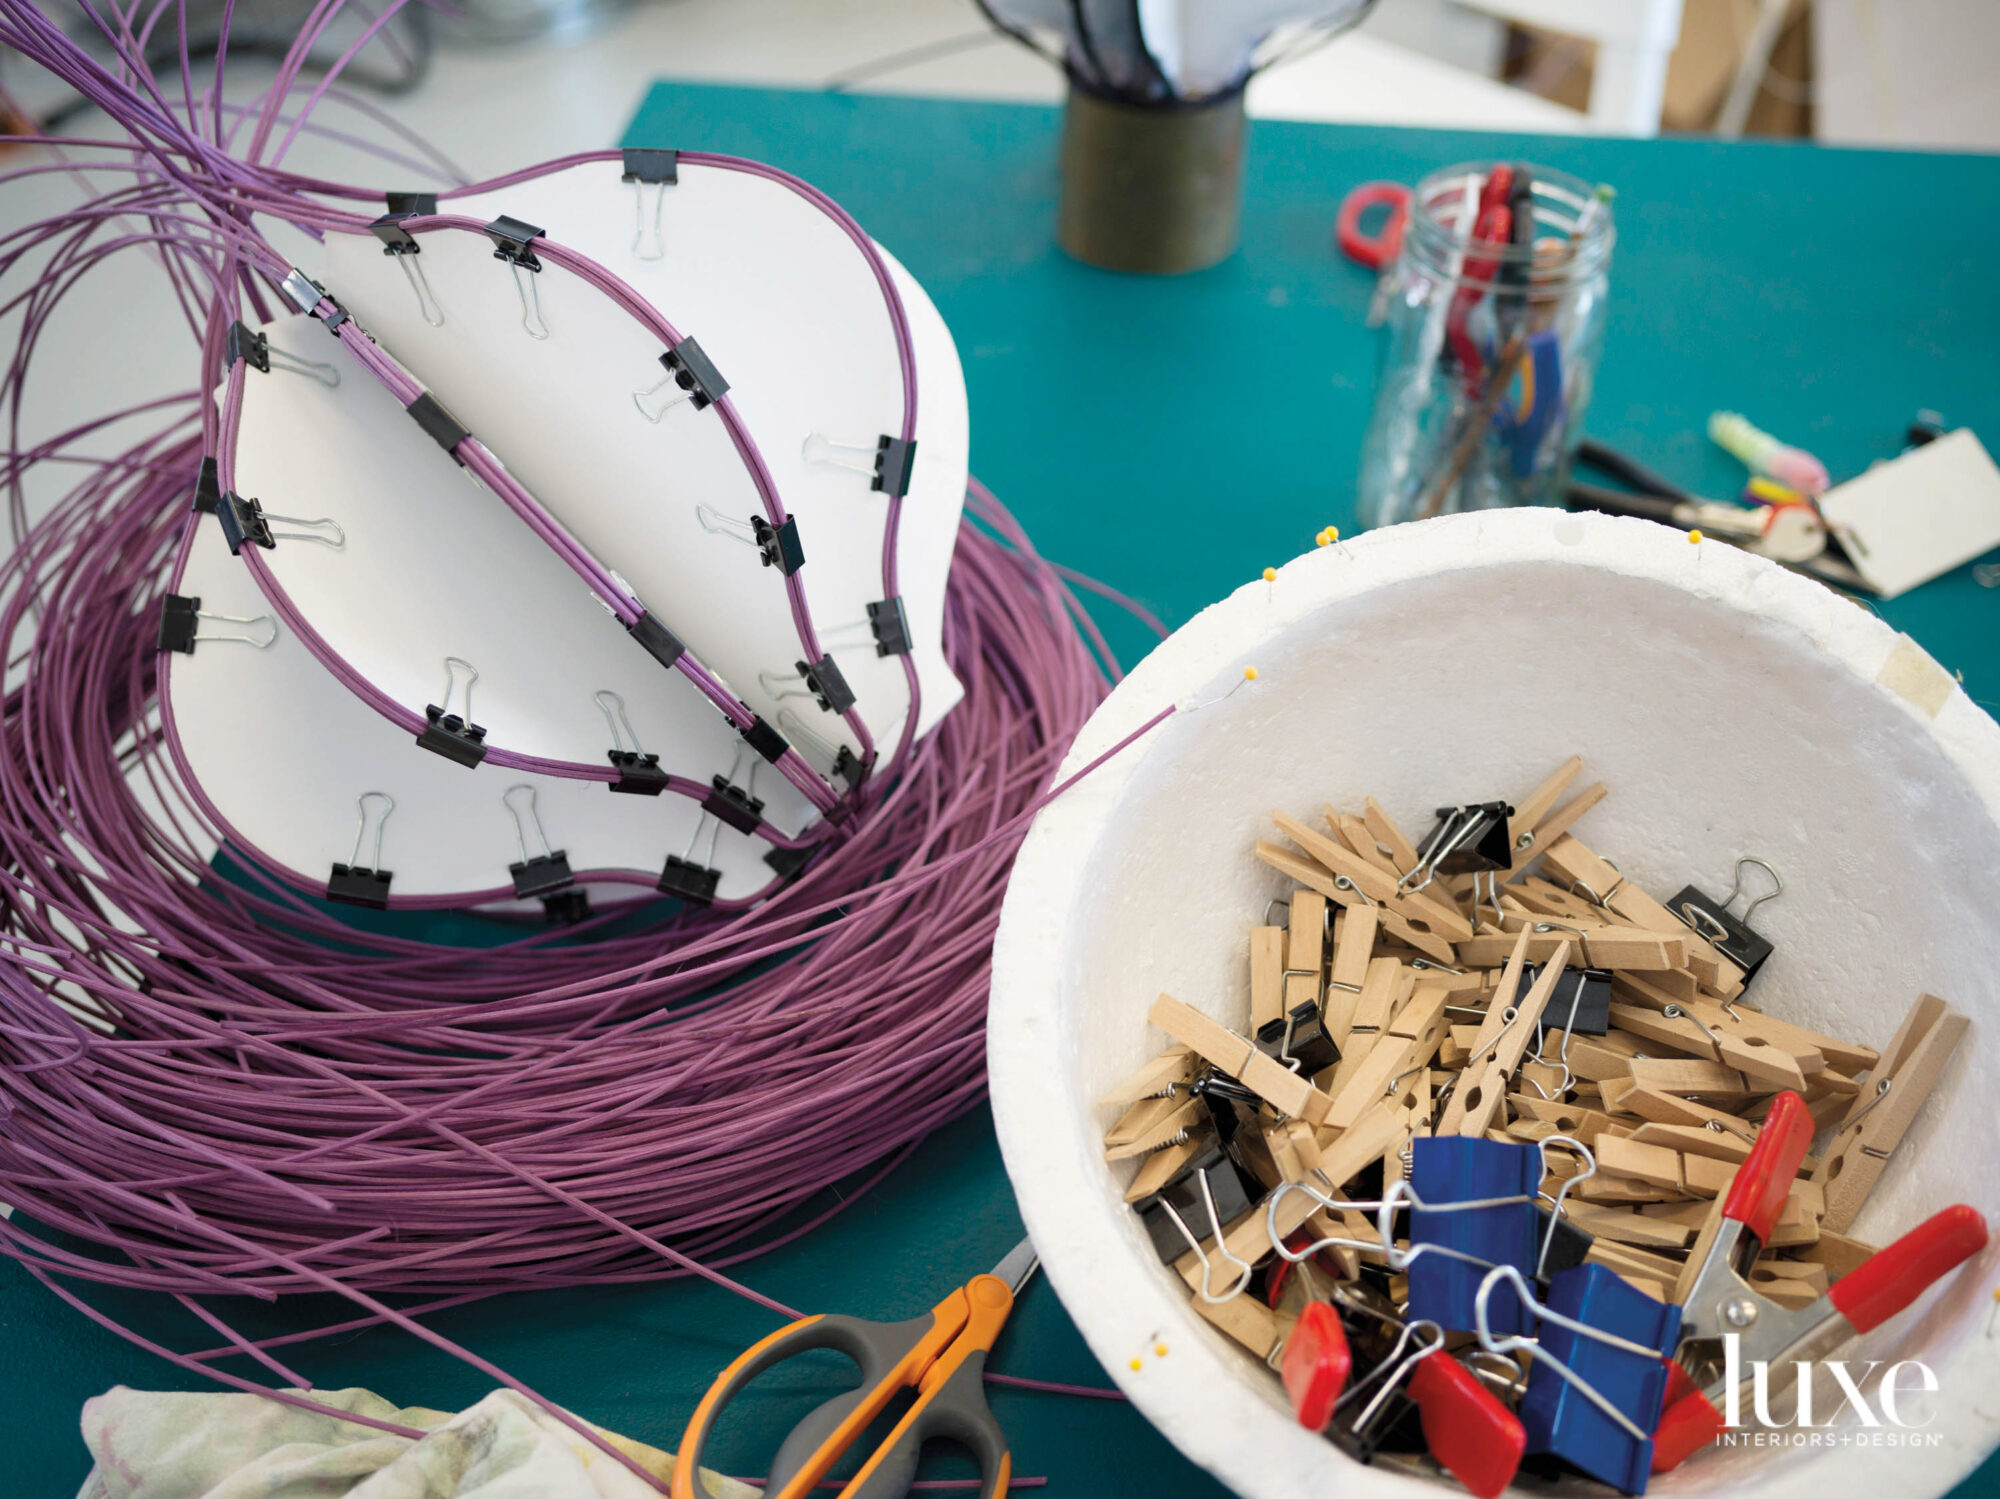 Purple fiber to be woven into a basket, clothespins and binder clips.